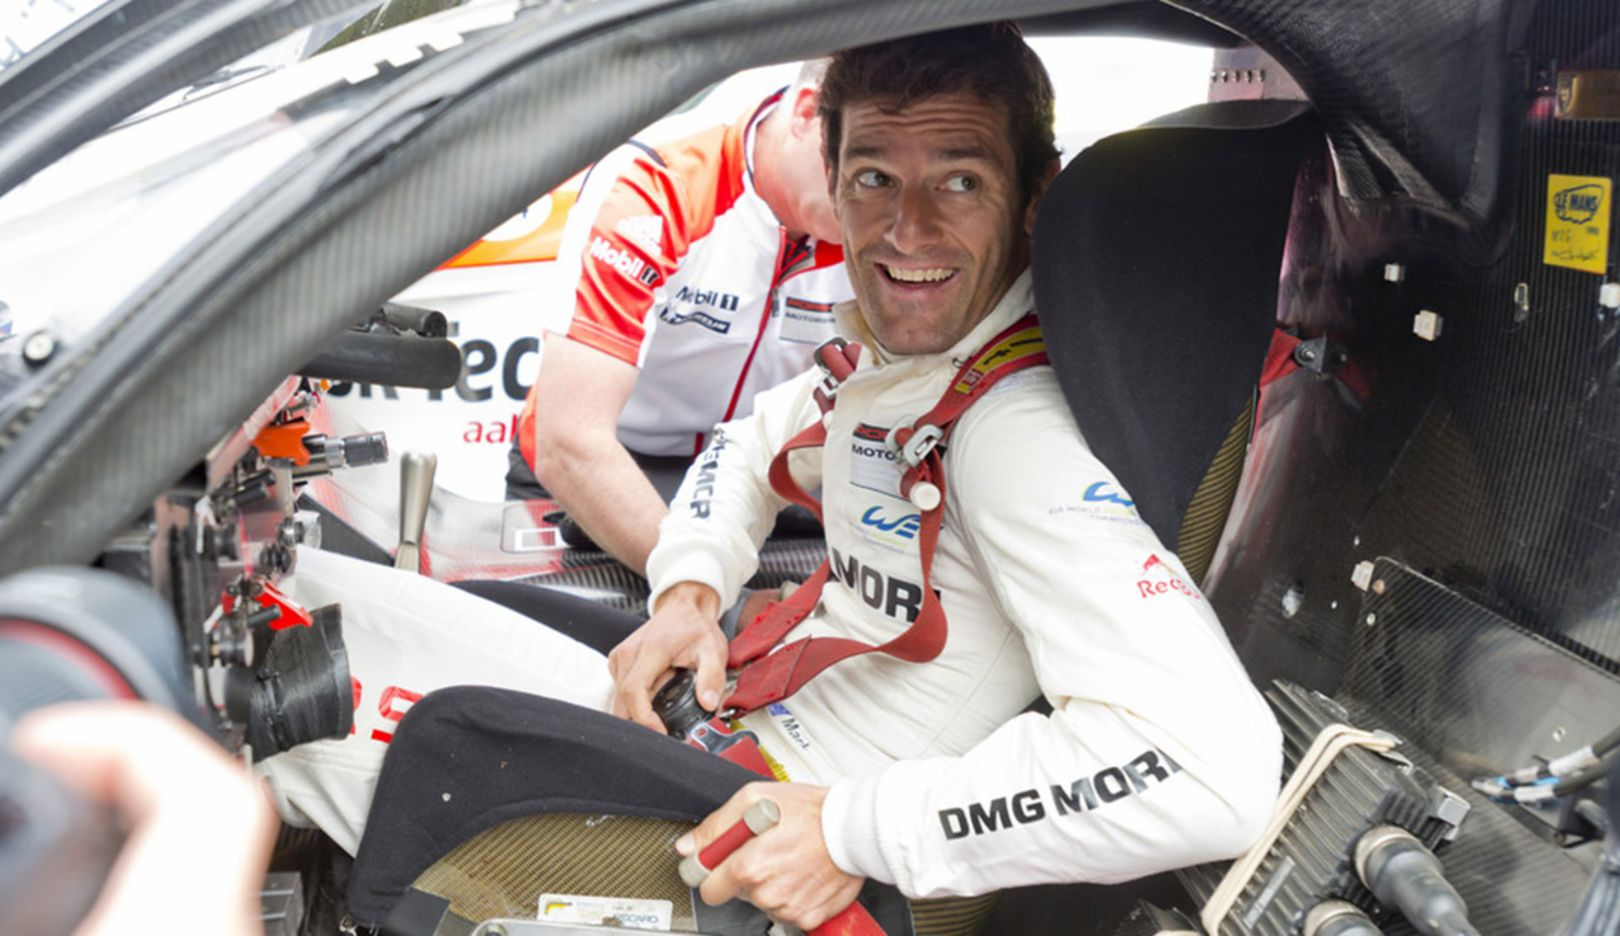 Mark Webber, Werksfahrer, Goodwood Festival of Speed, 2014, Porsche AG